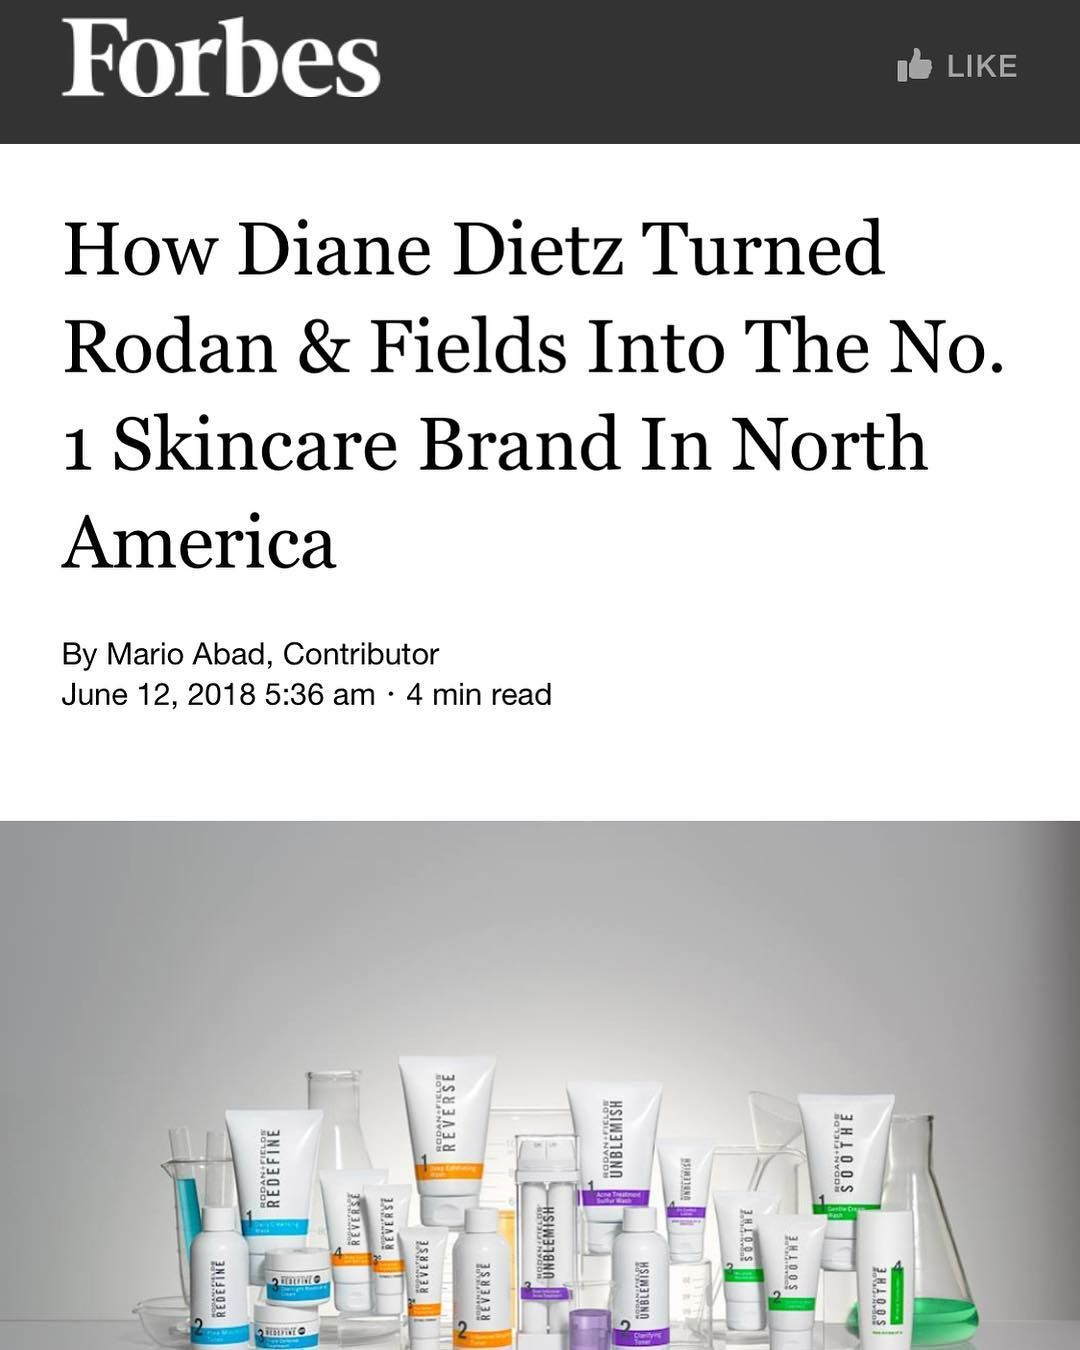 Great Article With Our Ceo Diane Dietz On How She Helped Turn R F Into The Number One Skincare Brand In North Americ Forbes Life Changing Opportunity Skin Care